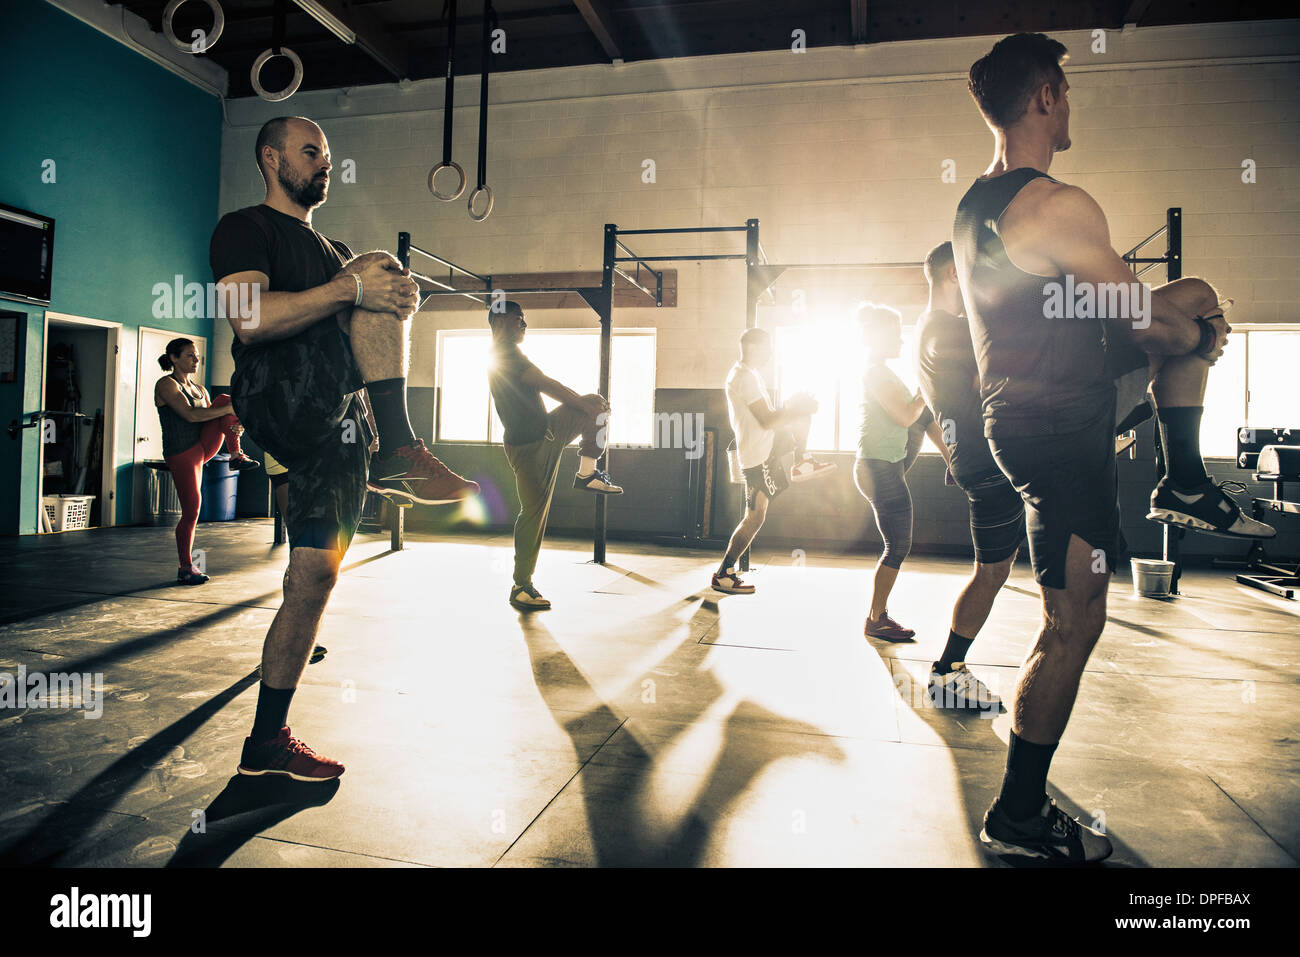 Fitness group training together in gymnasium - Stock Image